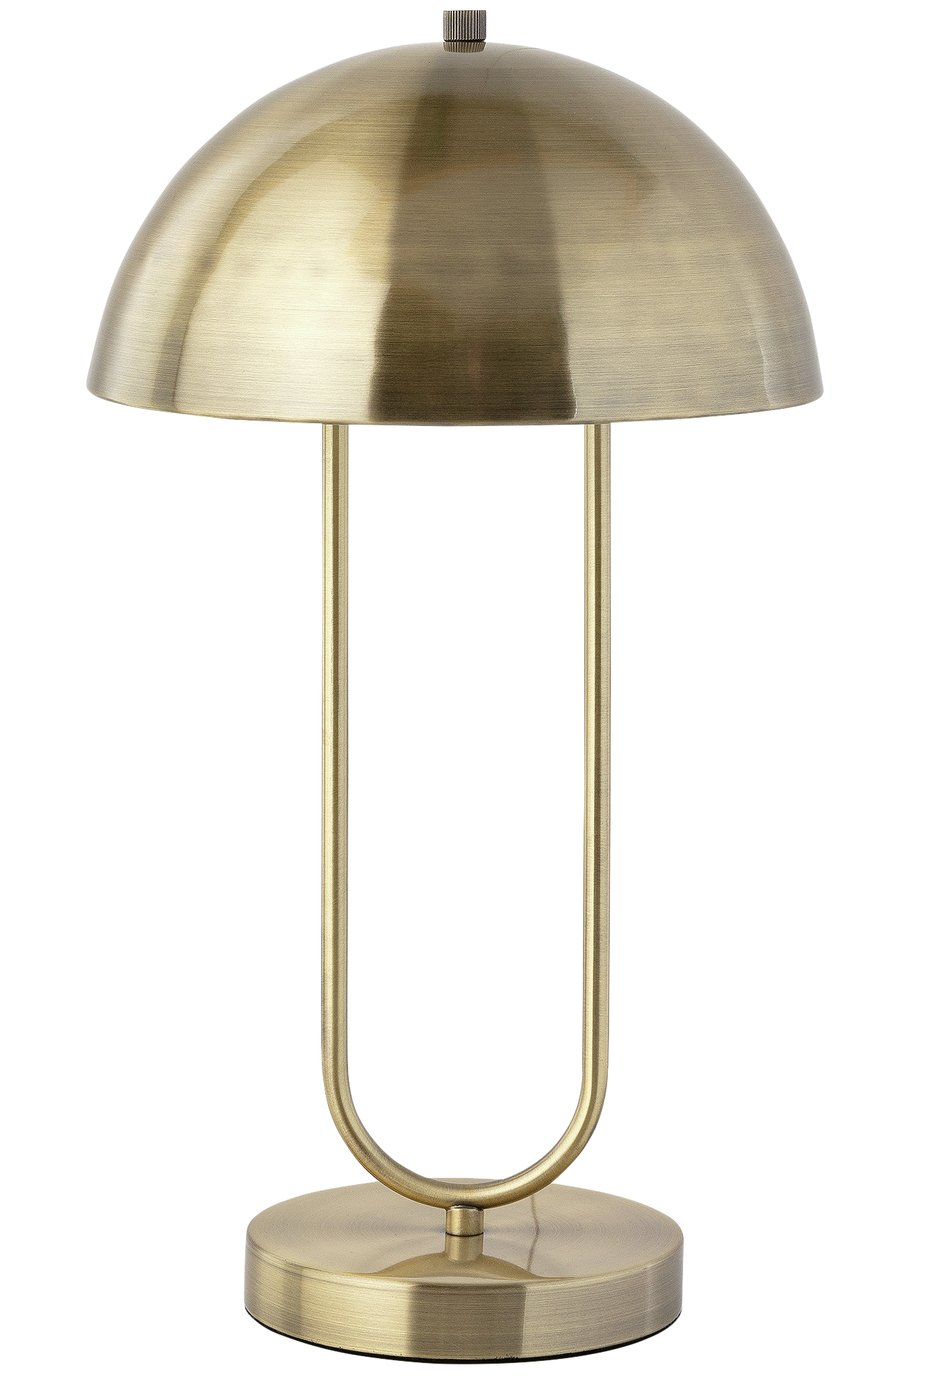 Argos Home Austin Table Lamp - Brass